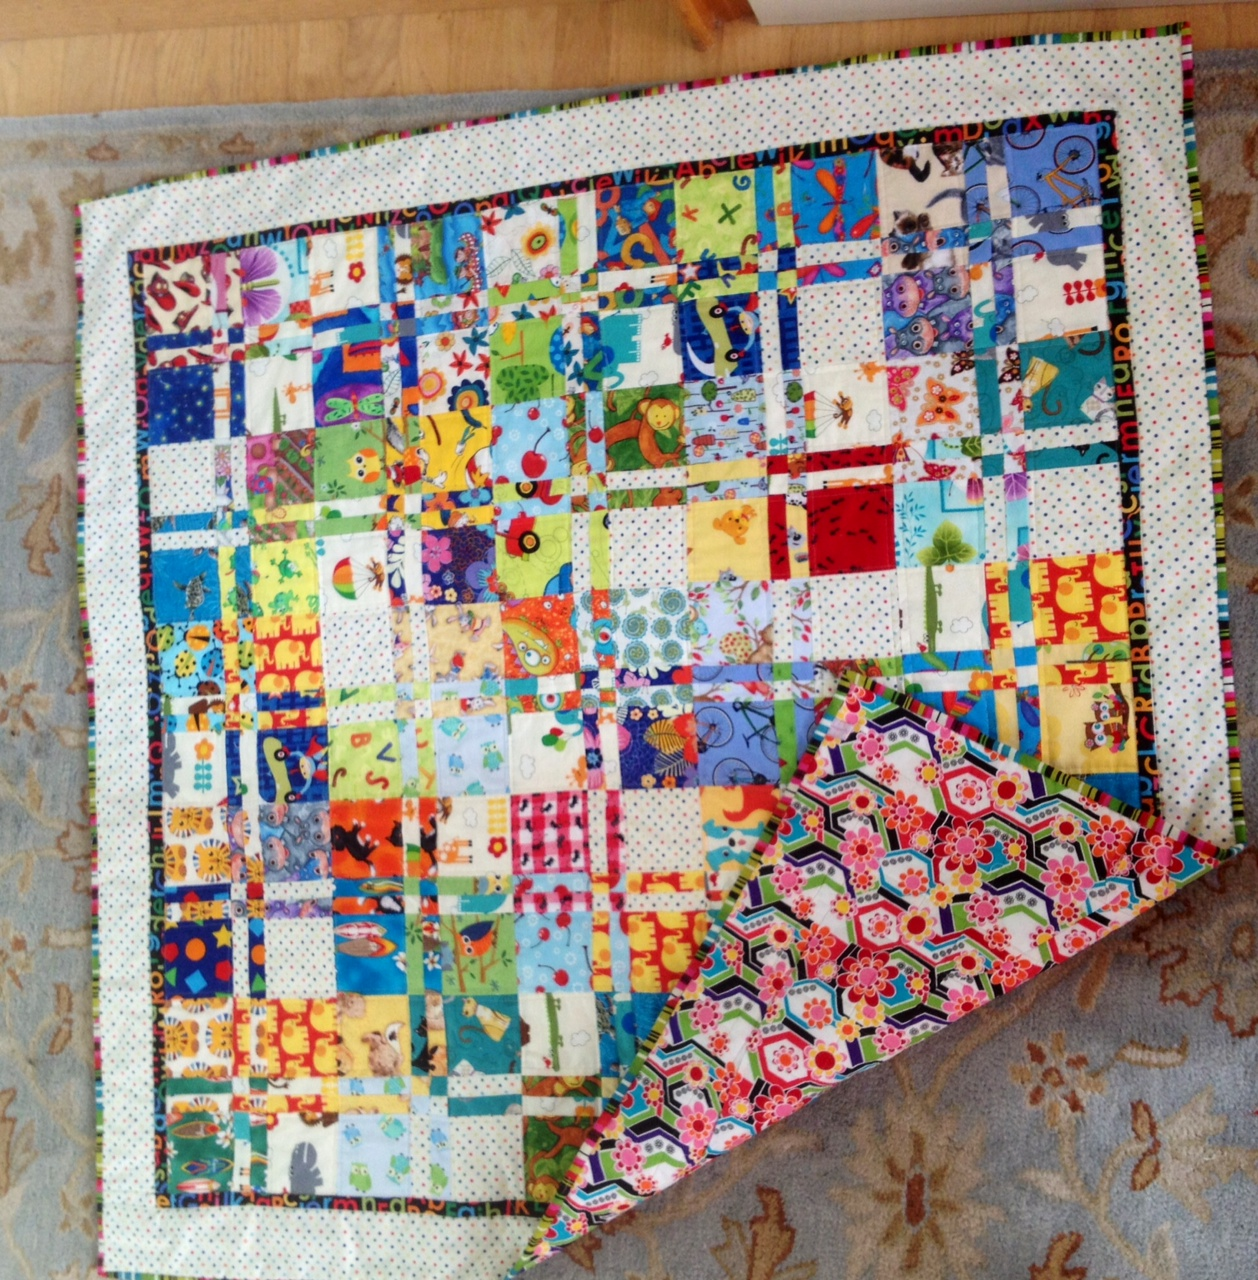 I Spy Disappearing 4 patch quilts for twins - boy and girl : disappearing four patch quilts - Adamdwight.com